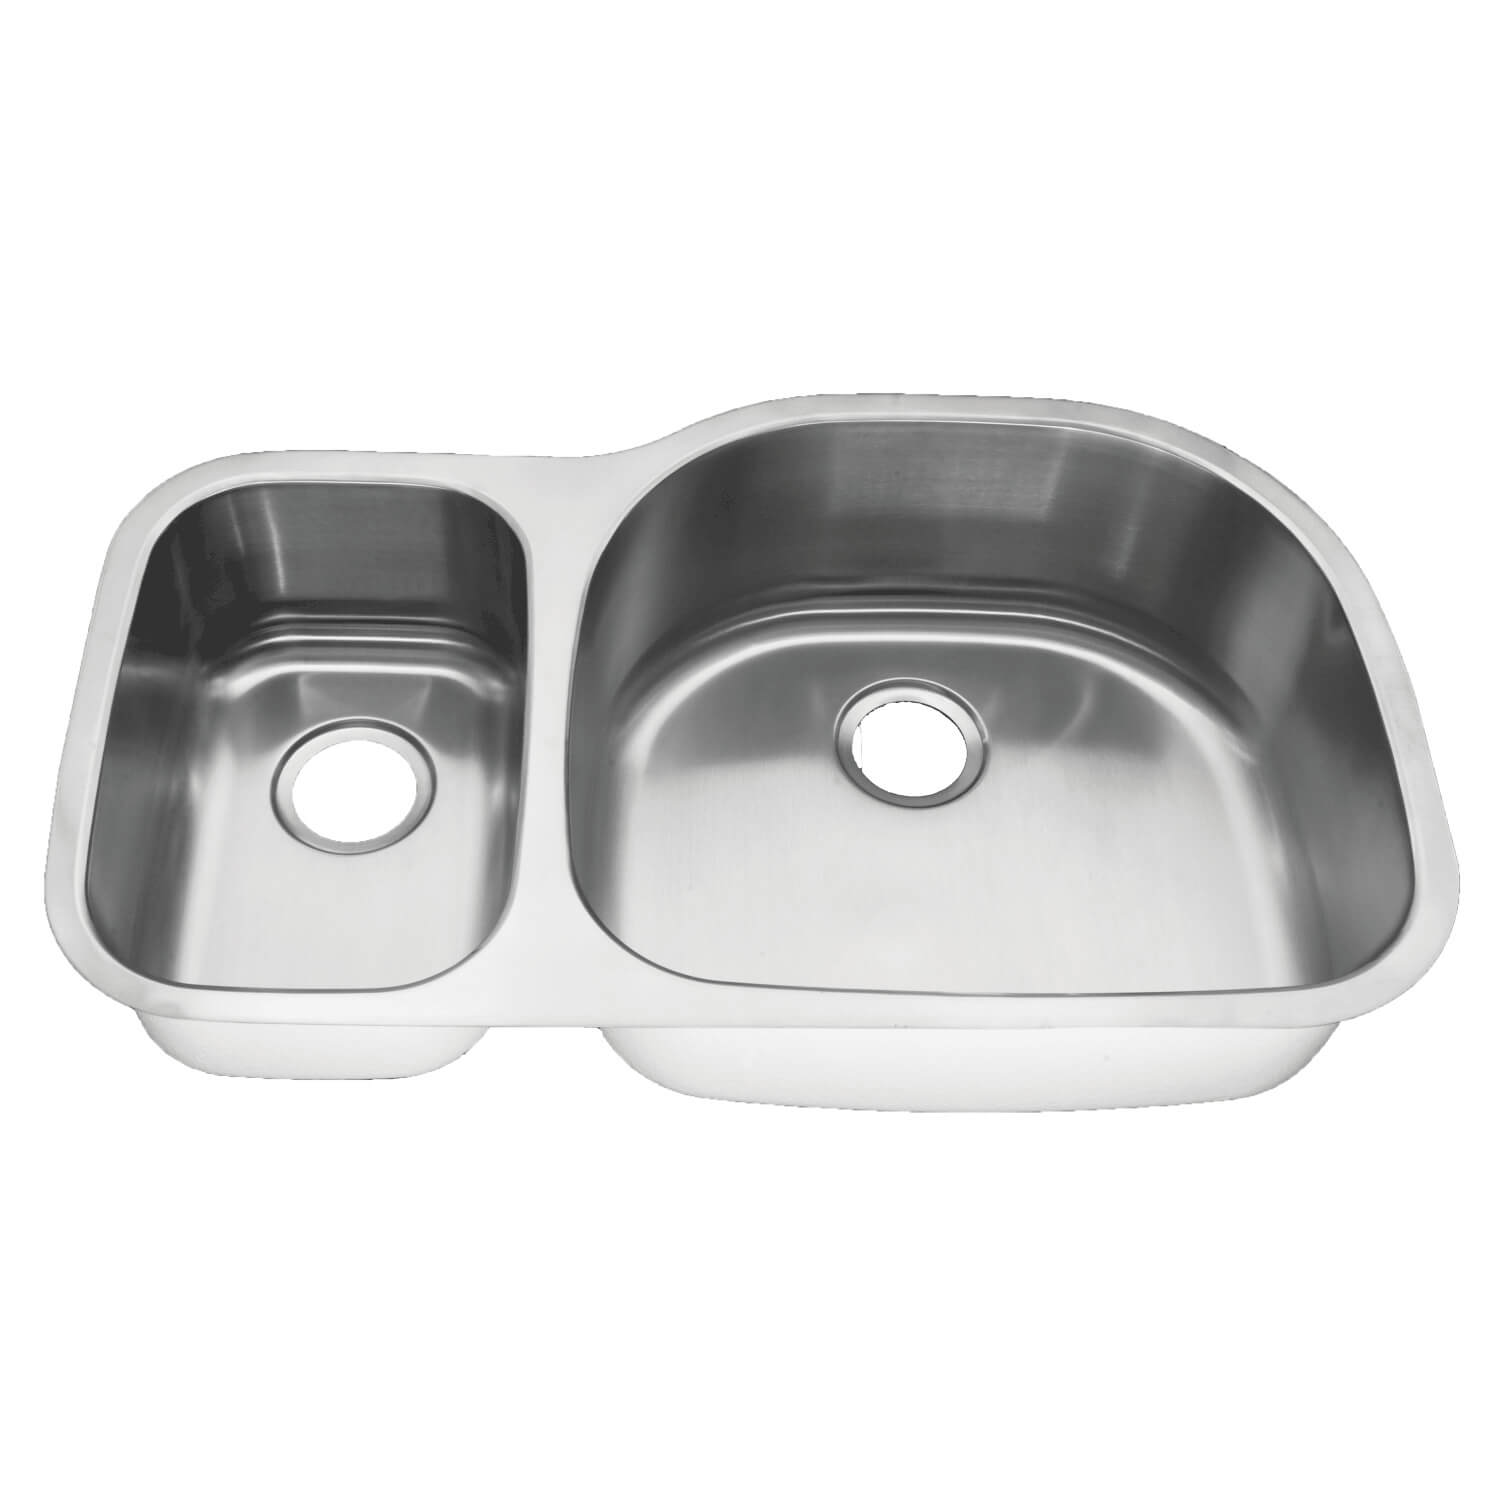 athens tyche reverse 35 1 4 x 20 3 4 x 9 stainless steel undermount 16 gauge 30 70 large double bowl kitchen sink